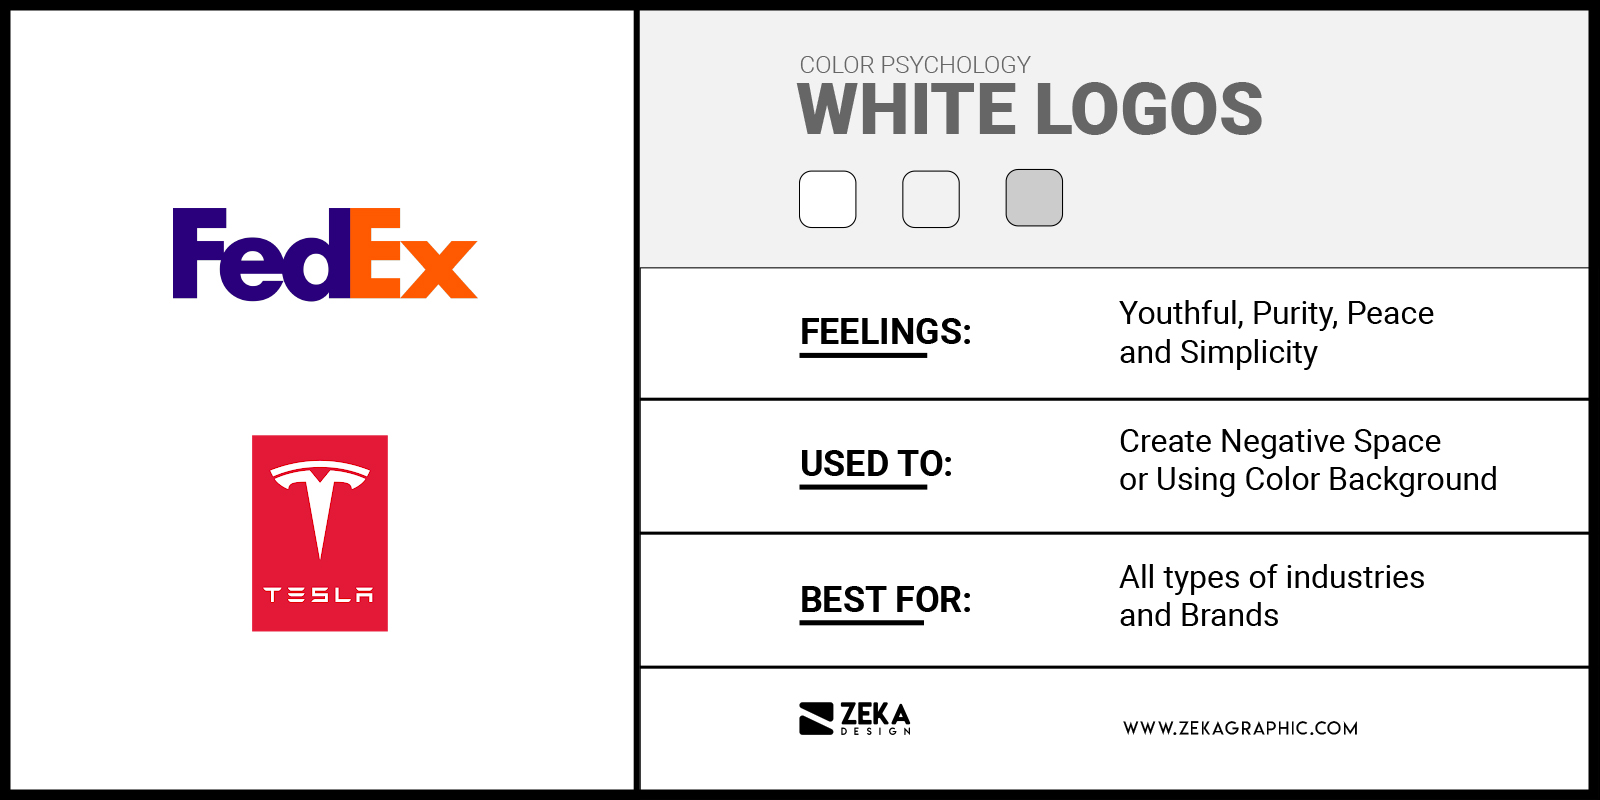 White Logos Meaning in Graphic Design Color Psychology